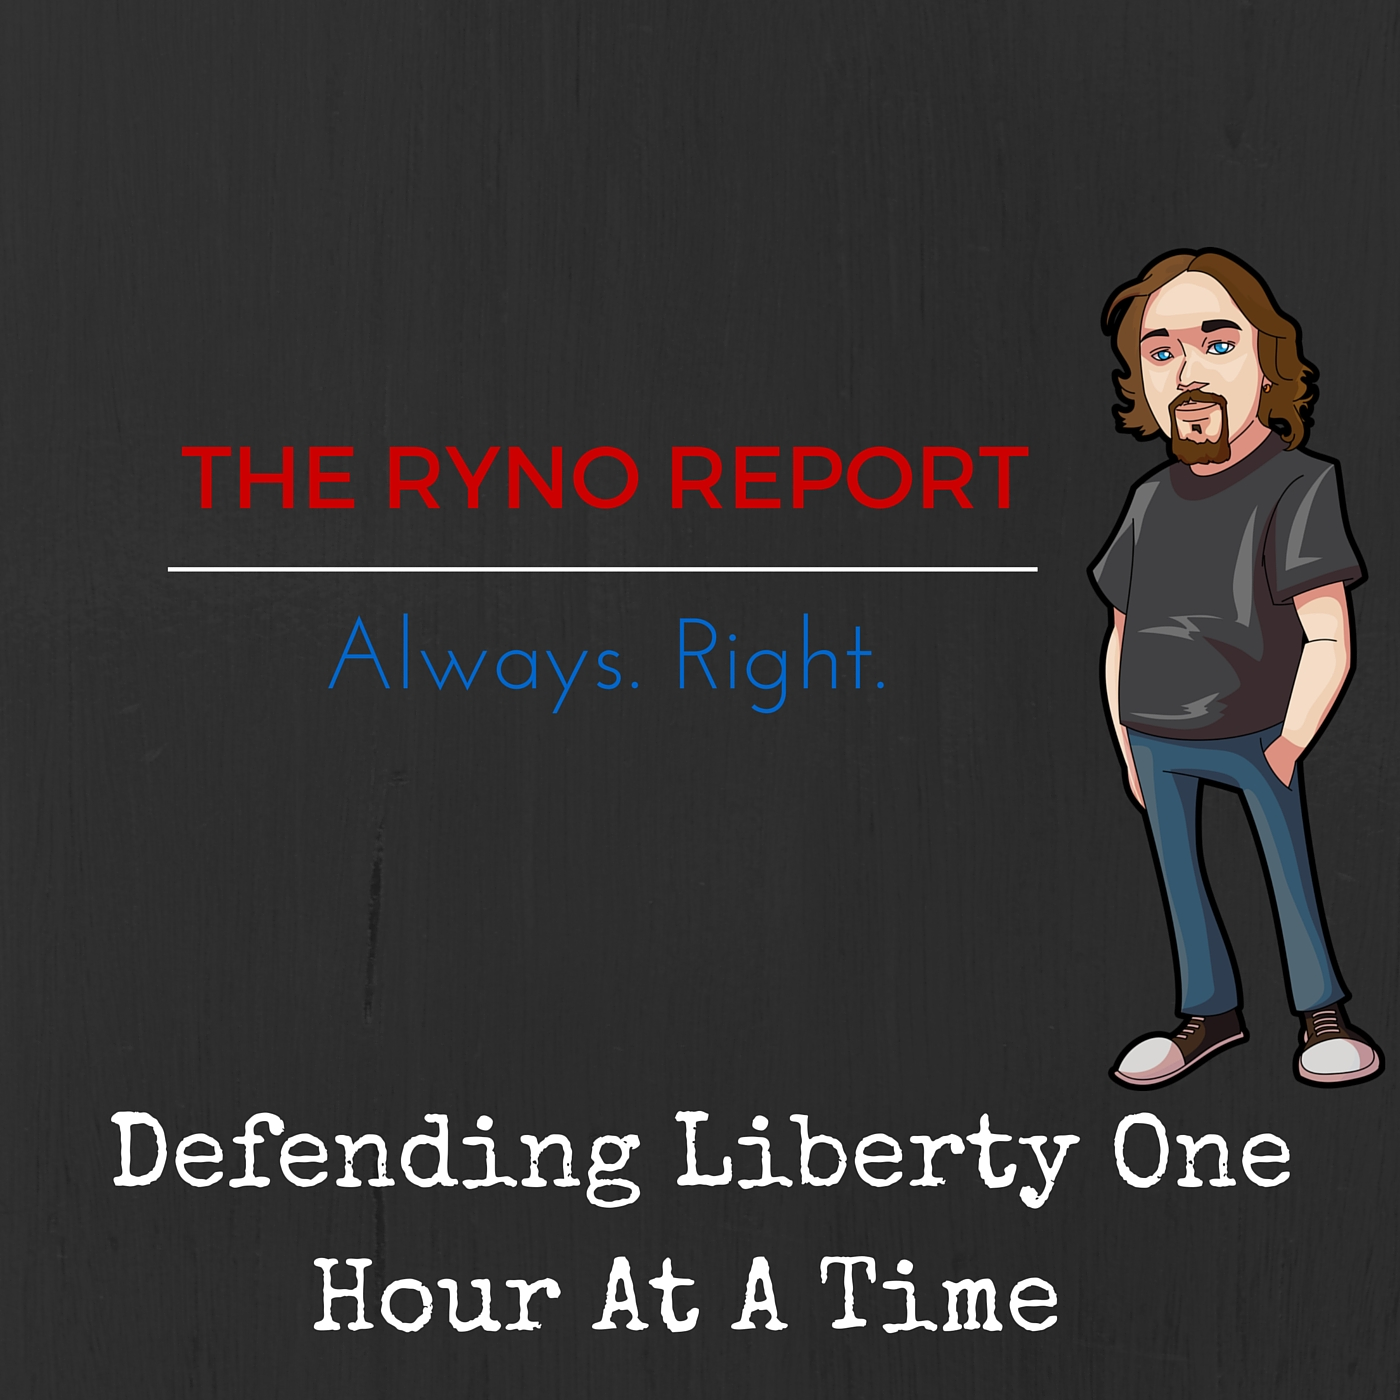 The Ryno Report